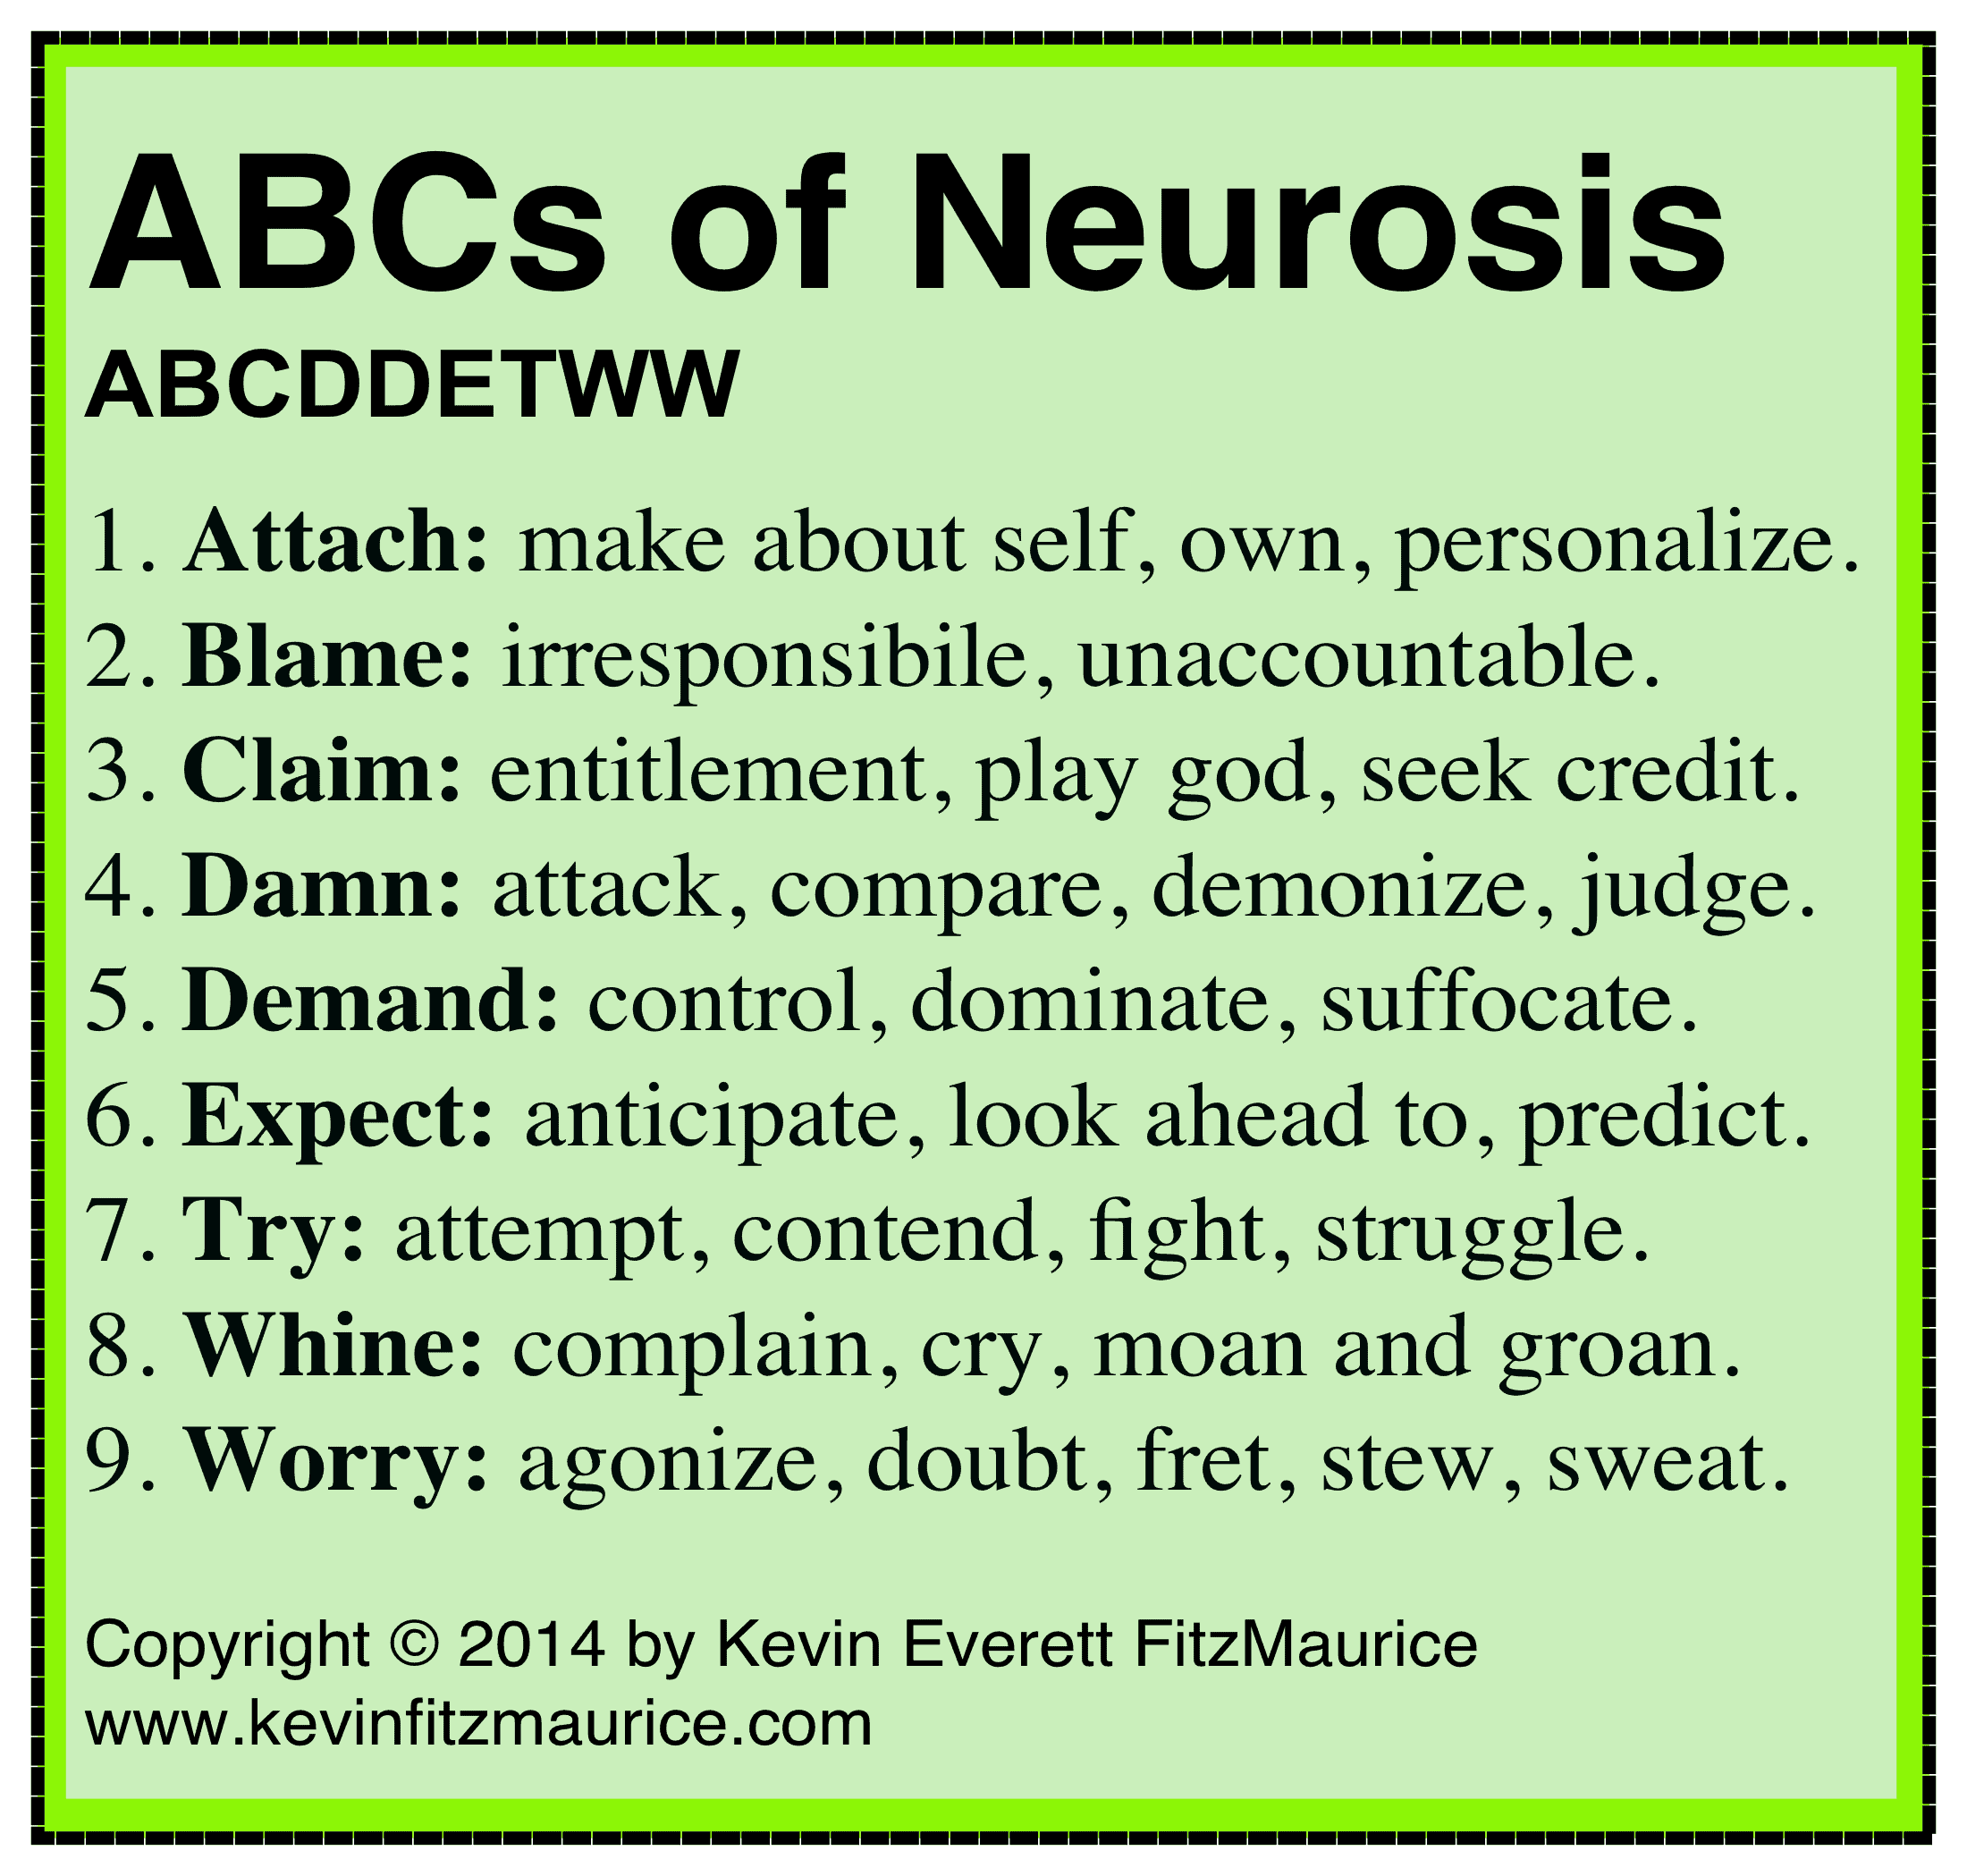 ABCs of neurosis